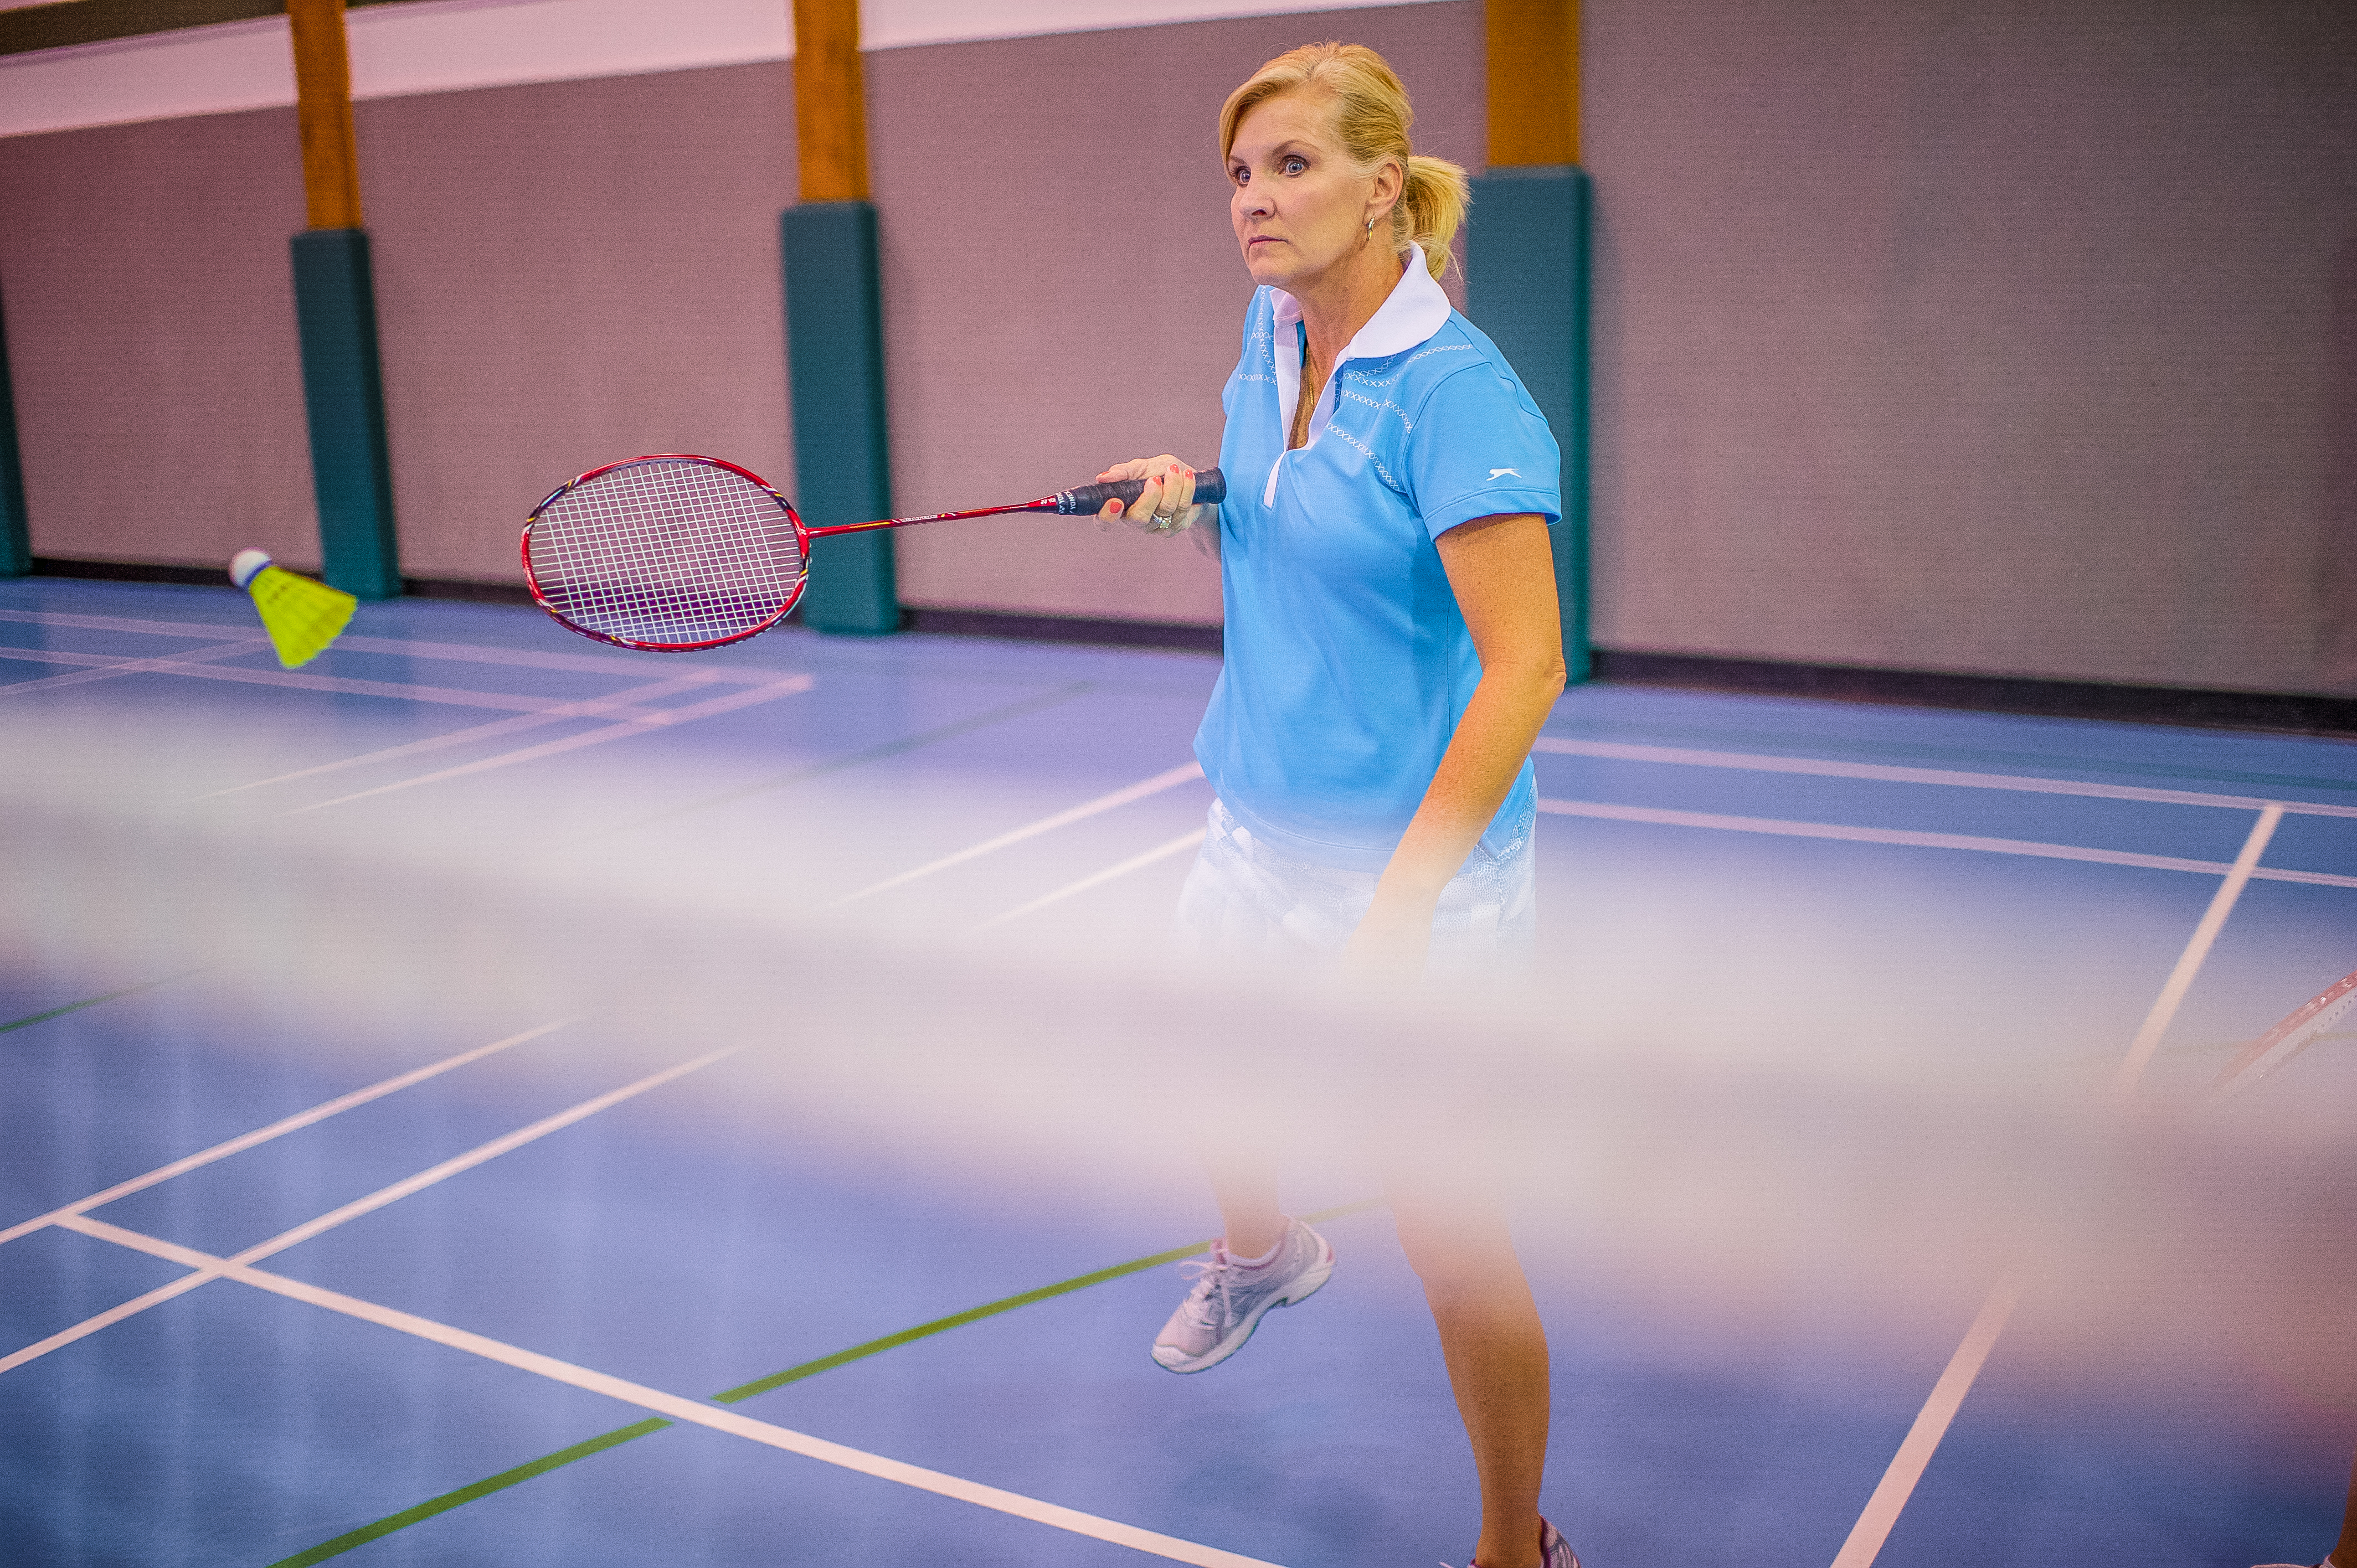 51. You can brush up on your badminton at the Chota Recreation Center